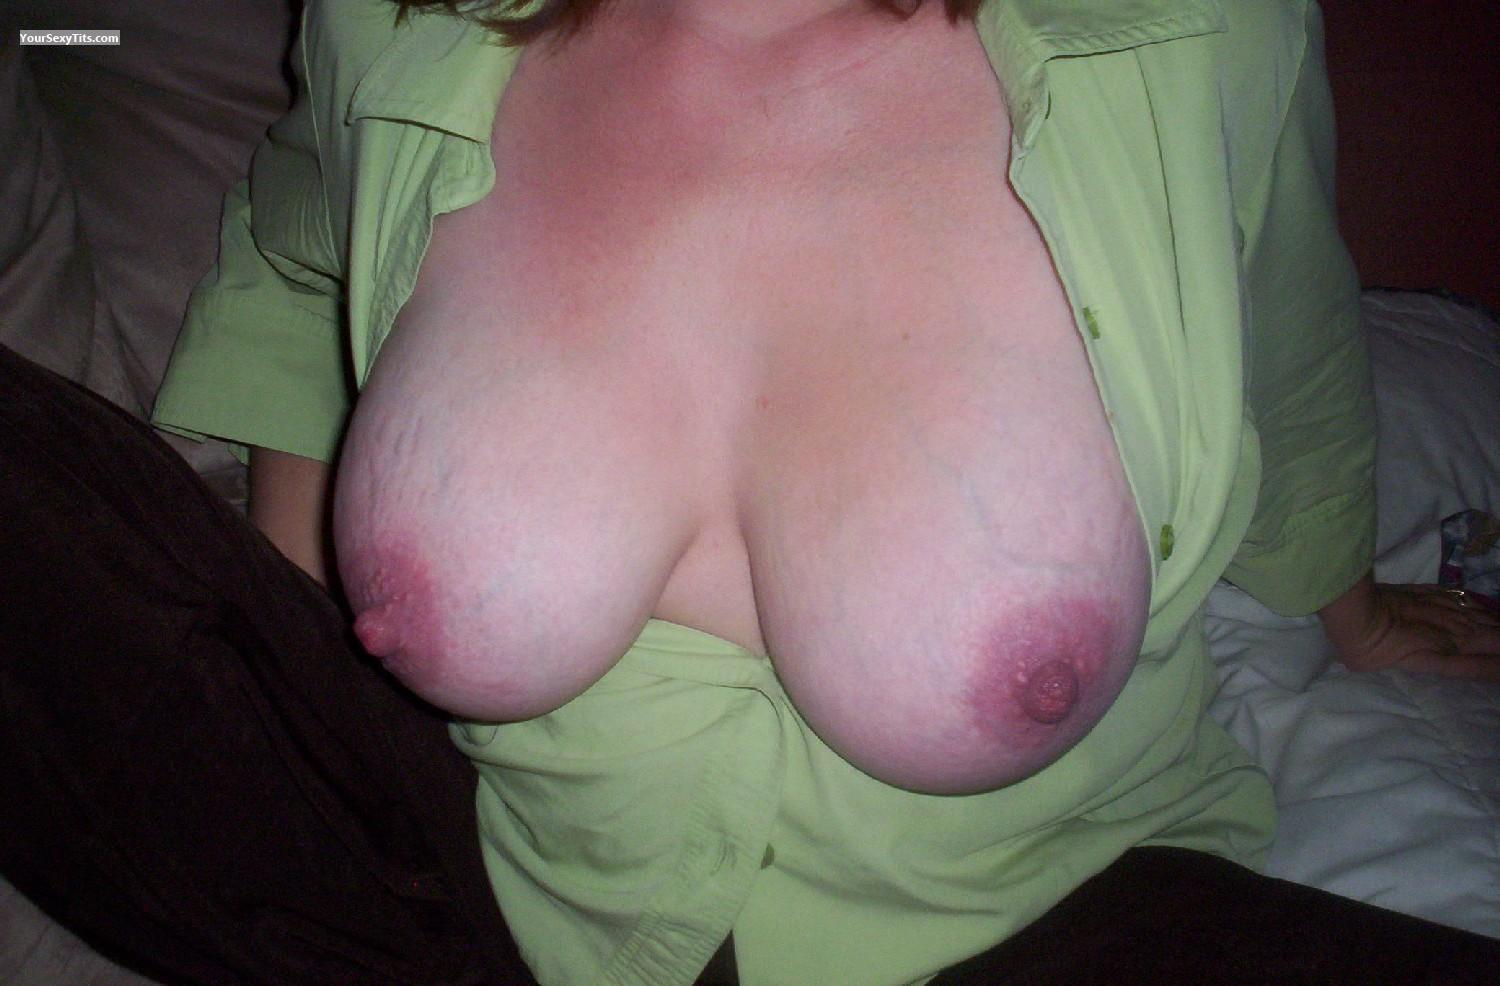 Tit Flash: Very Big Tits - Pixieannie from United States